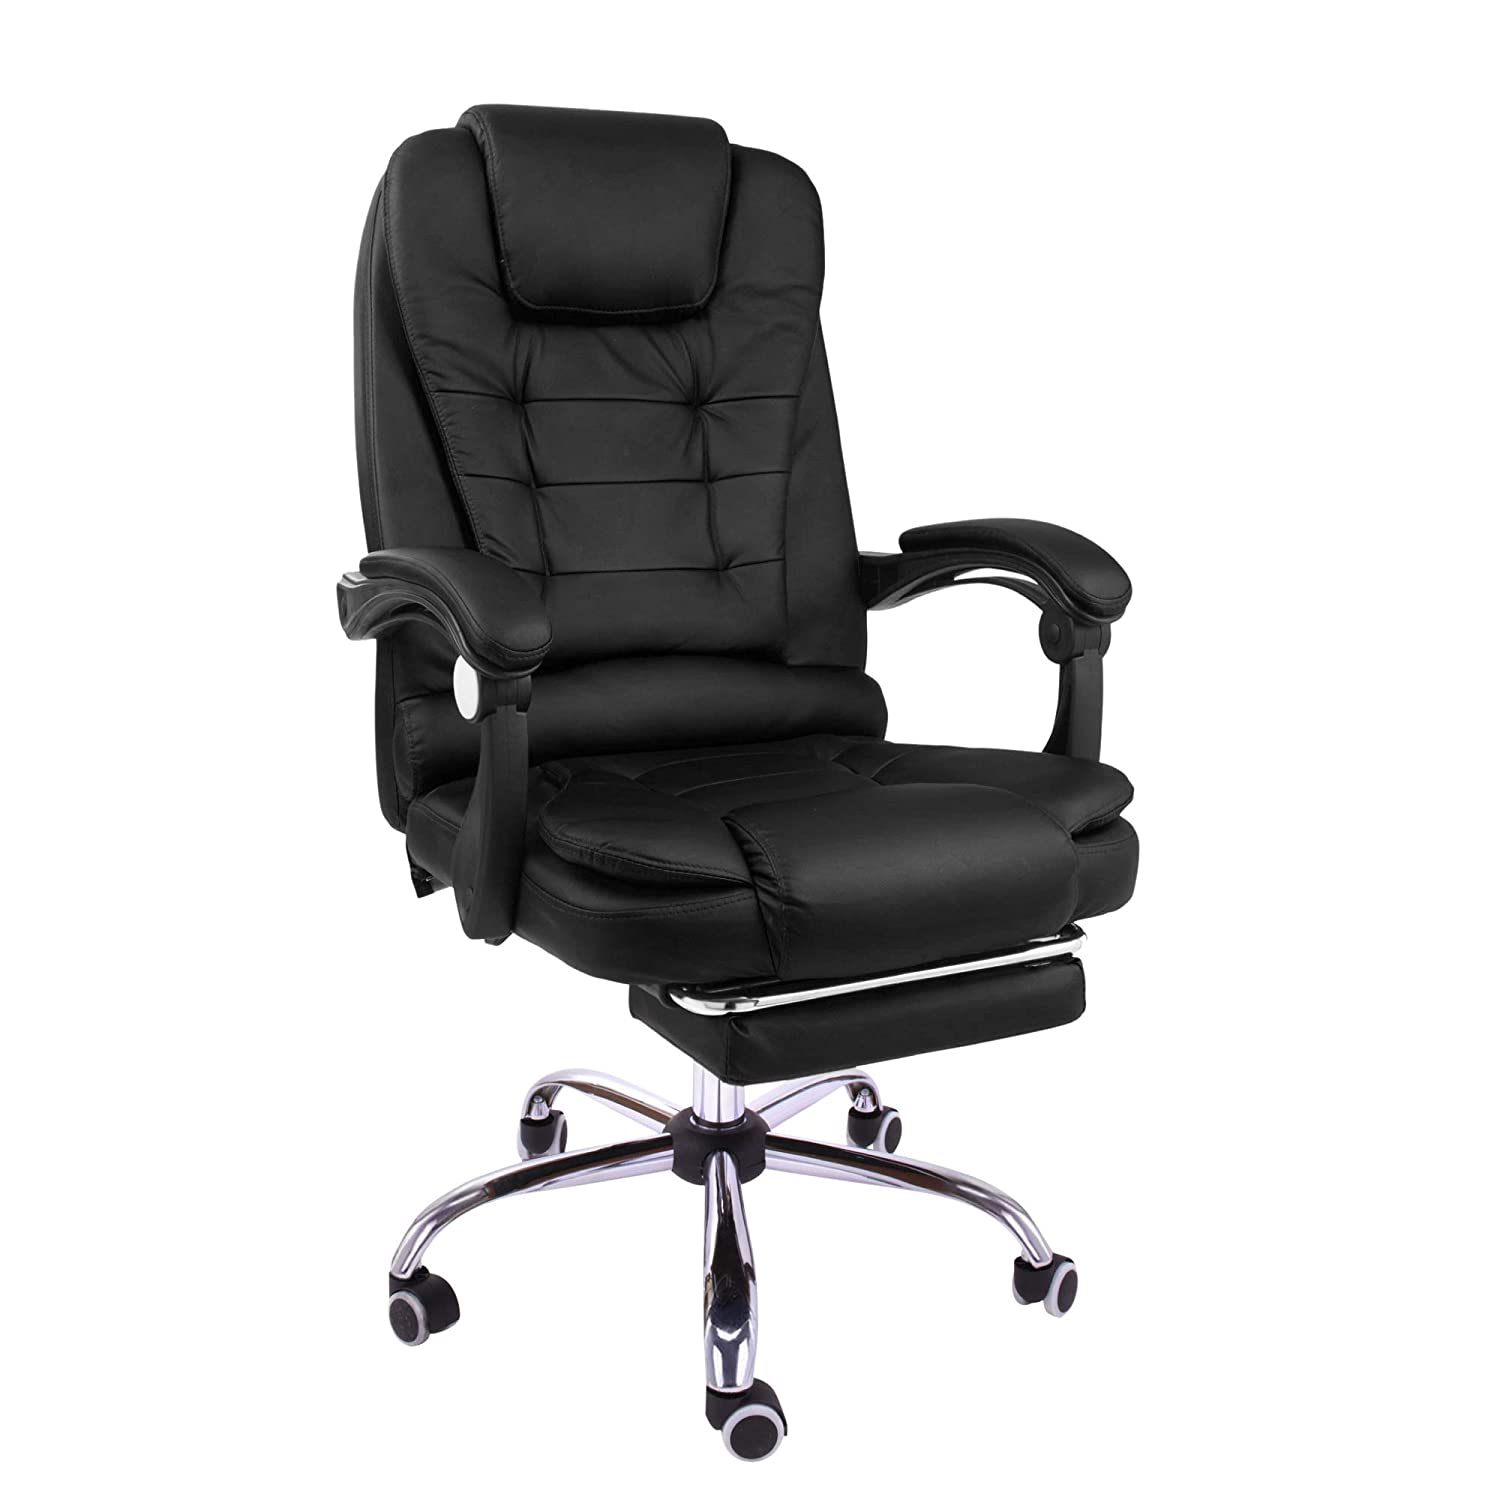 Halter Reclining Leather Office Chair - Modern Executive Adjustable Rolling Swivel Chair Headrest with Retractable Footrest (Black)